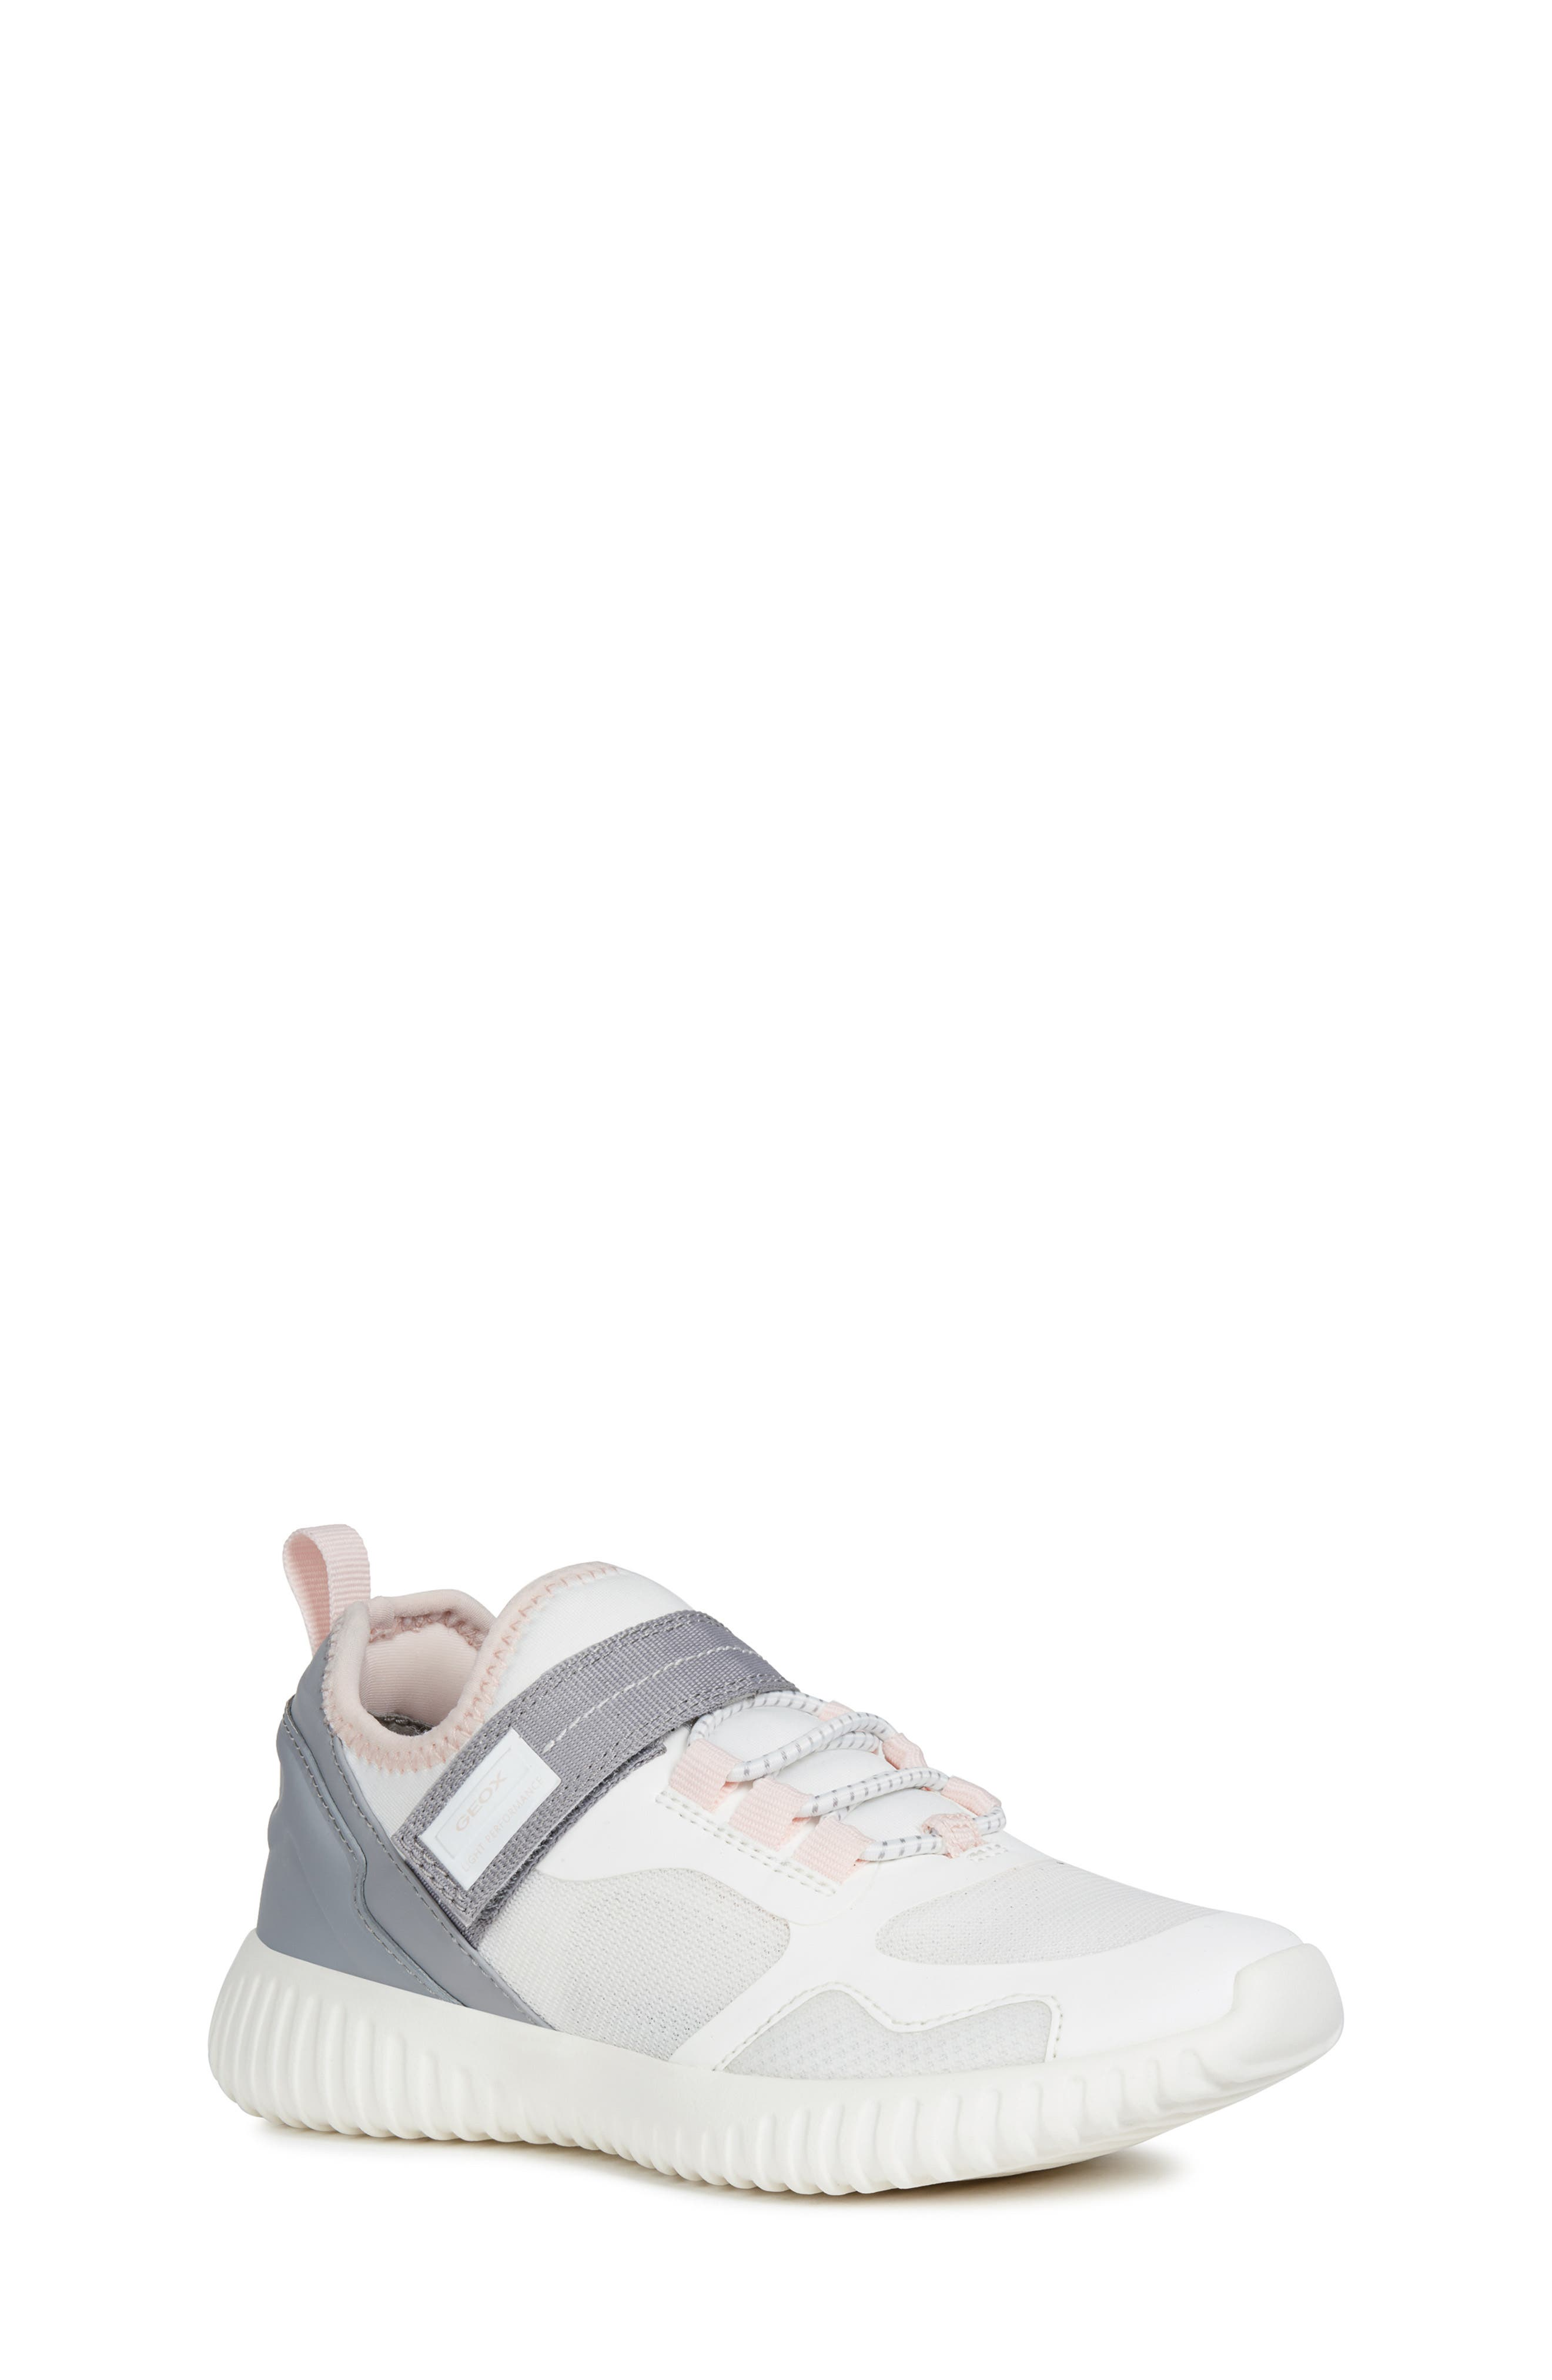 Waviness Sneaker,                             Main thumbnail 1, color,                             WHITE/ GREY